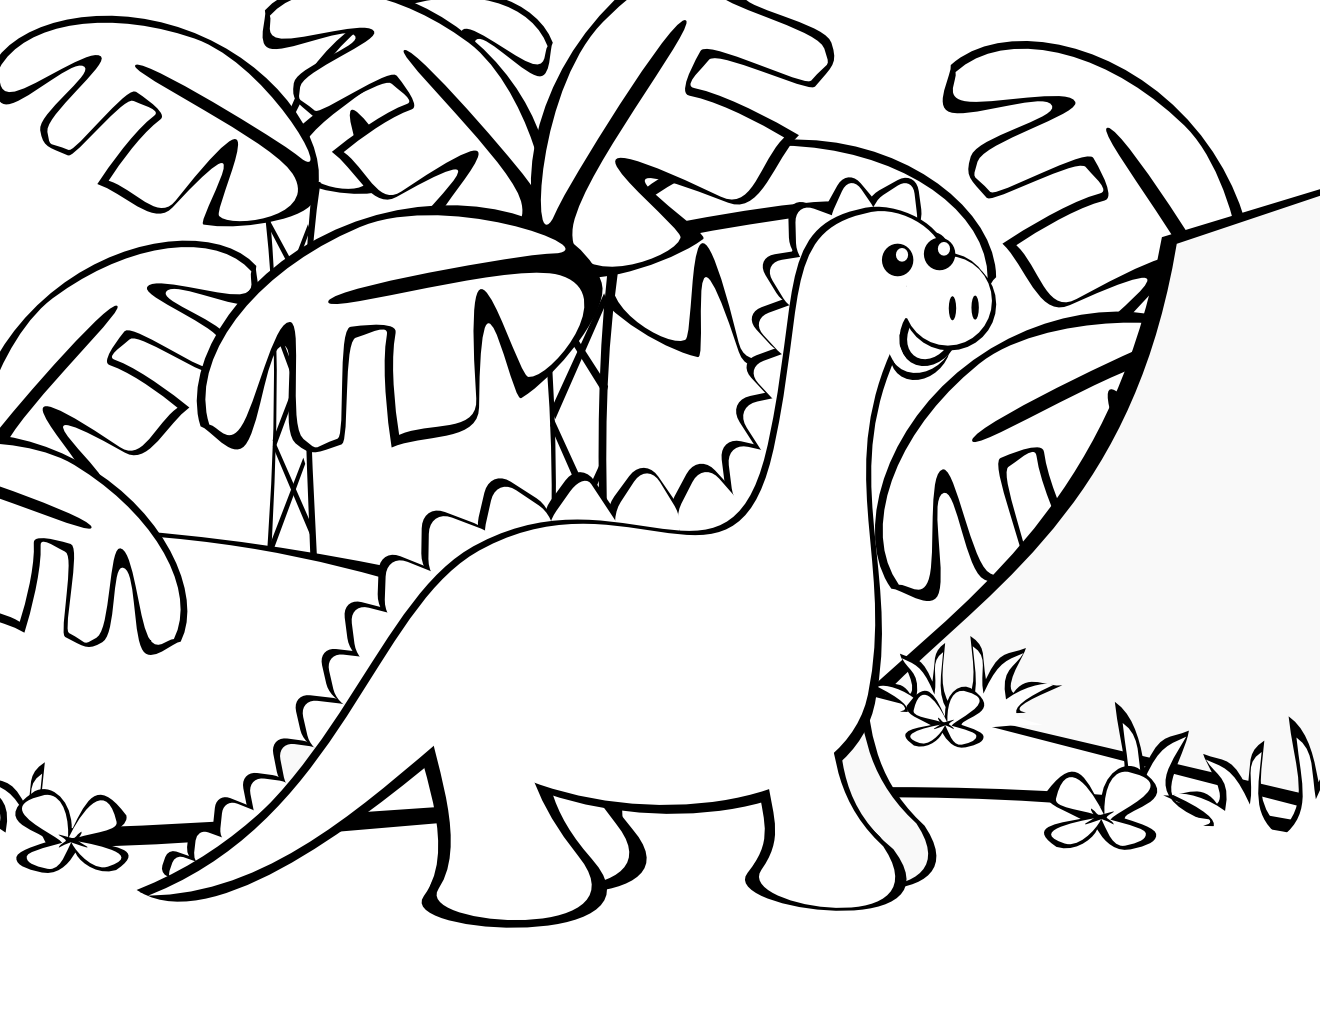 dinsaur coloring pages - photo#35